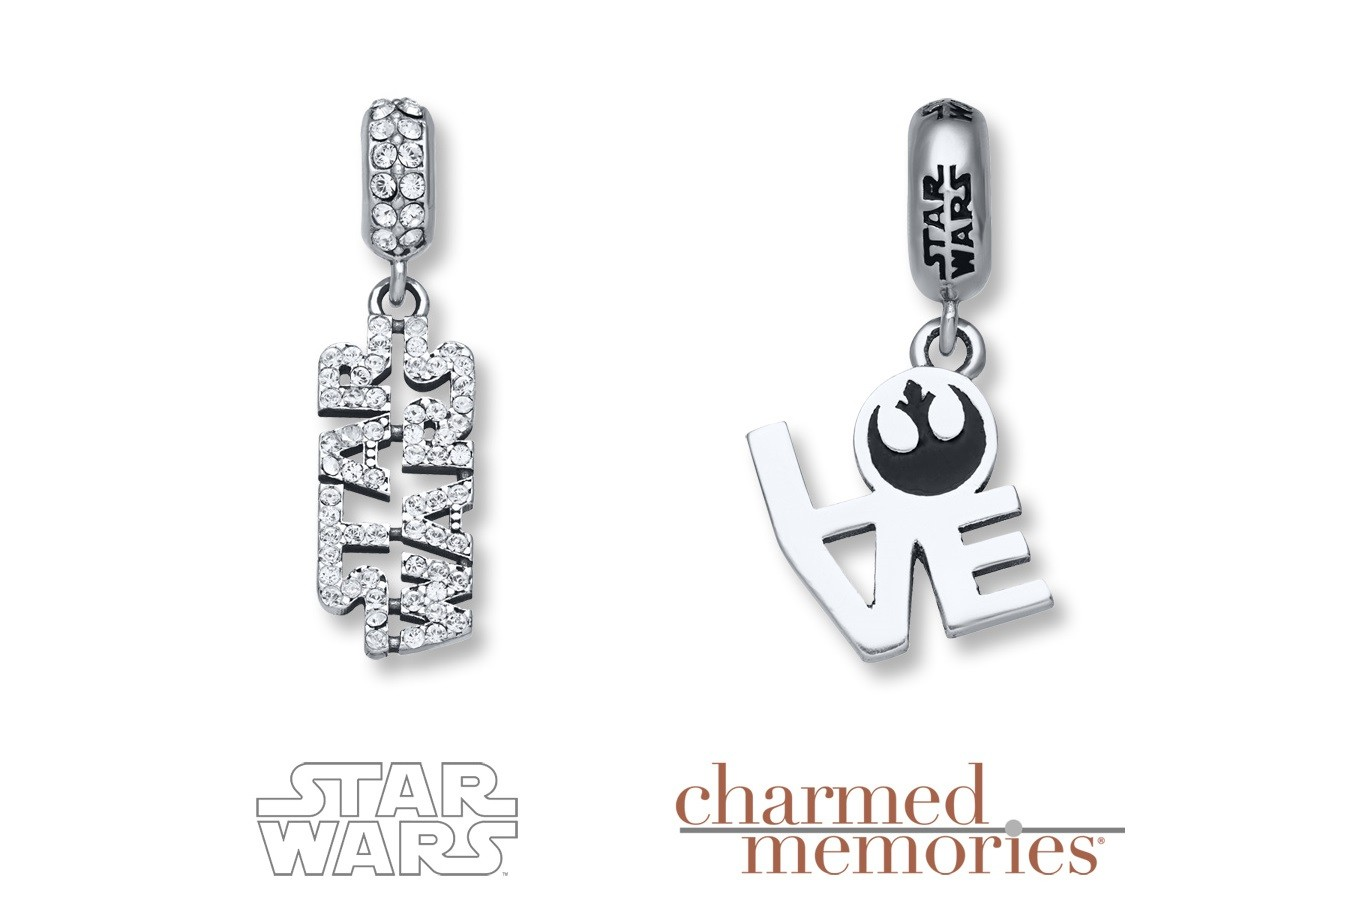 More Kay Jewelers x Star Wars charms - The Kessel Runway